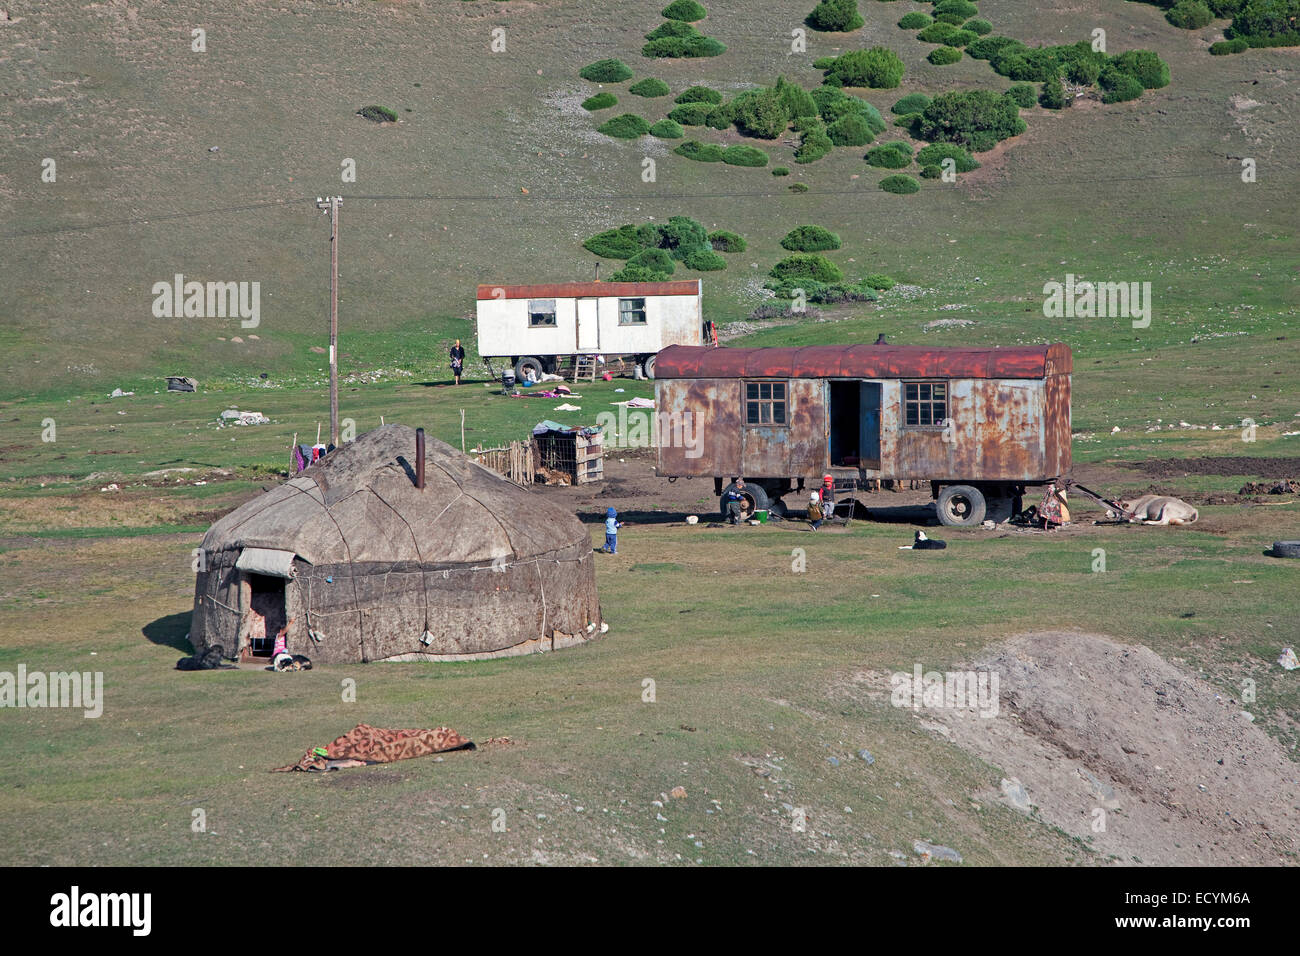 Kyrgyz yurt, temporary summer nomad dwelling in the Osh Province, Kyrgyzstan - Stock Image